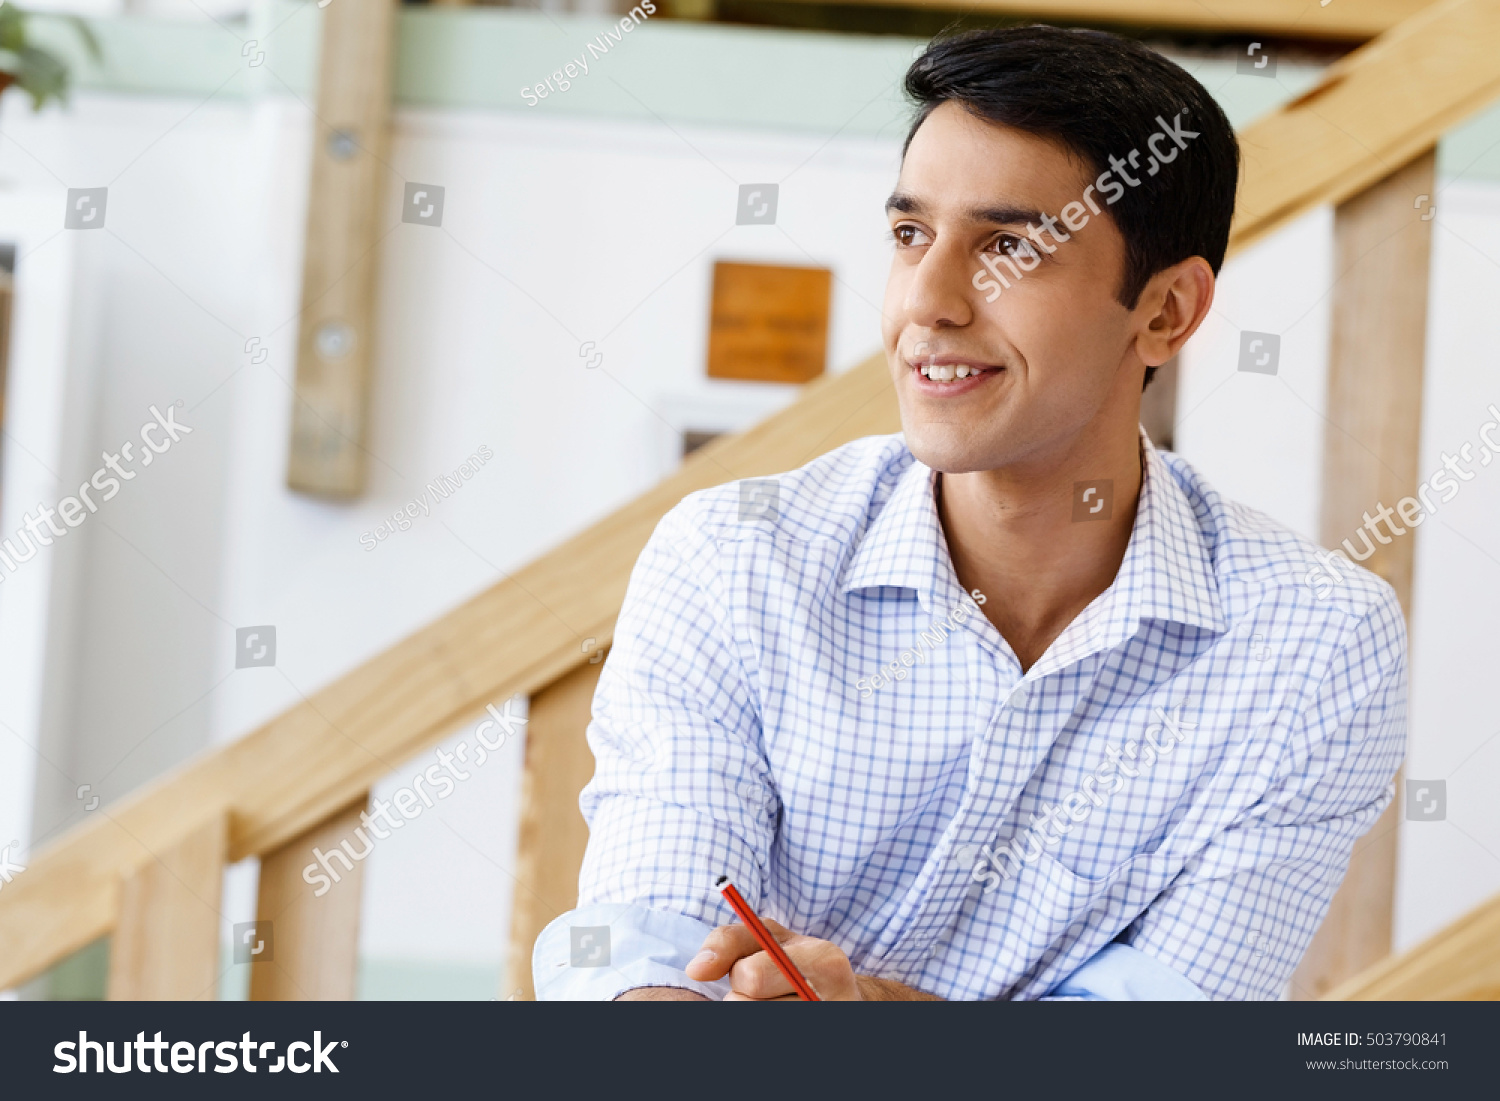 Portrait young man office stock photo 503790841 shutterstock - Office portrait photography ...